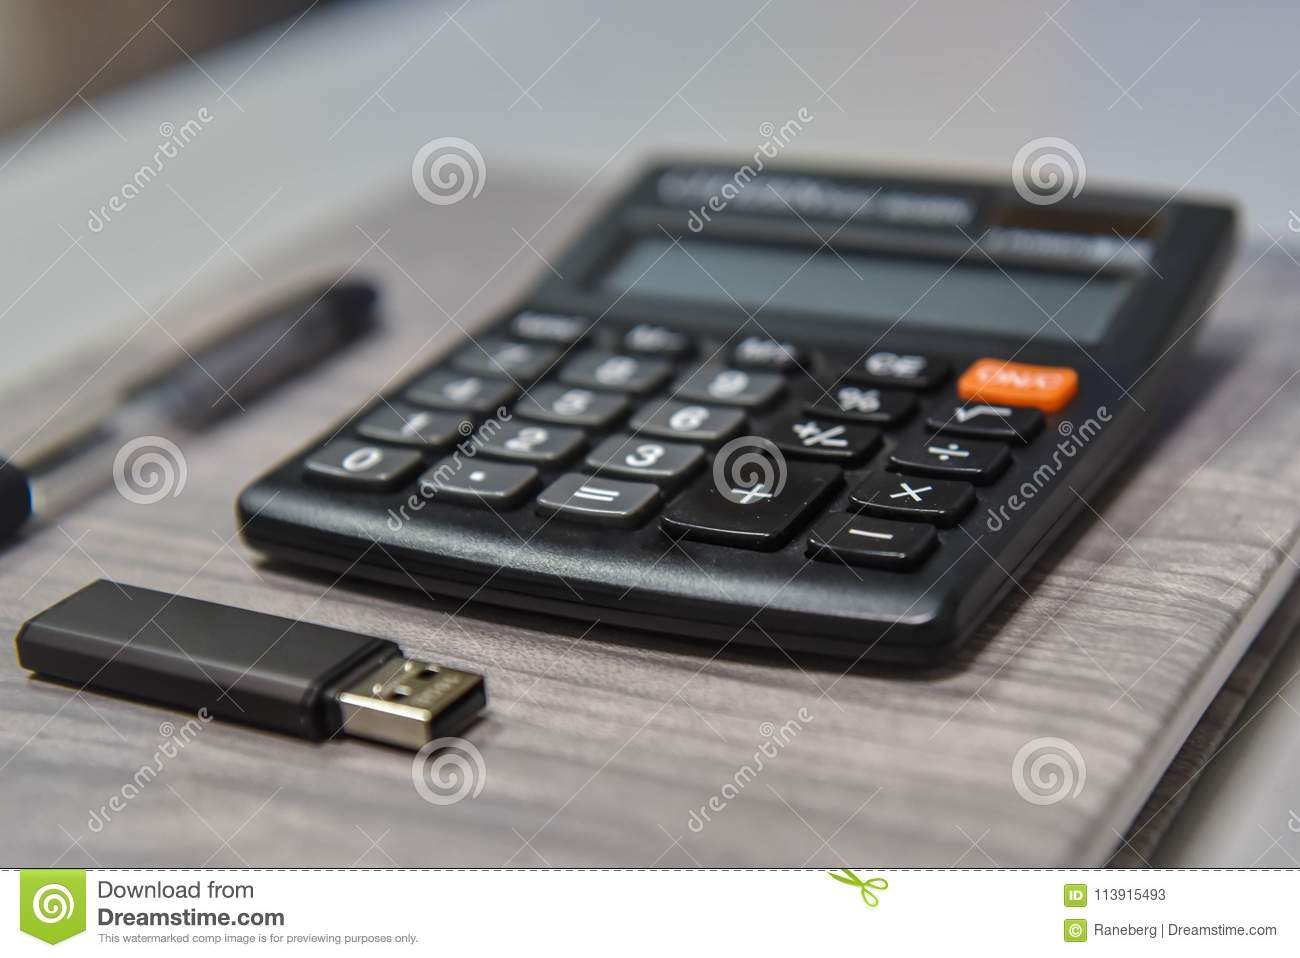 Calculator, pen and usb stick in the office